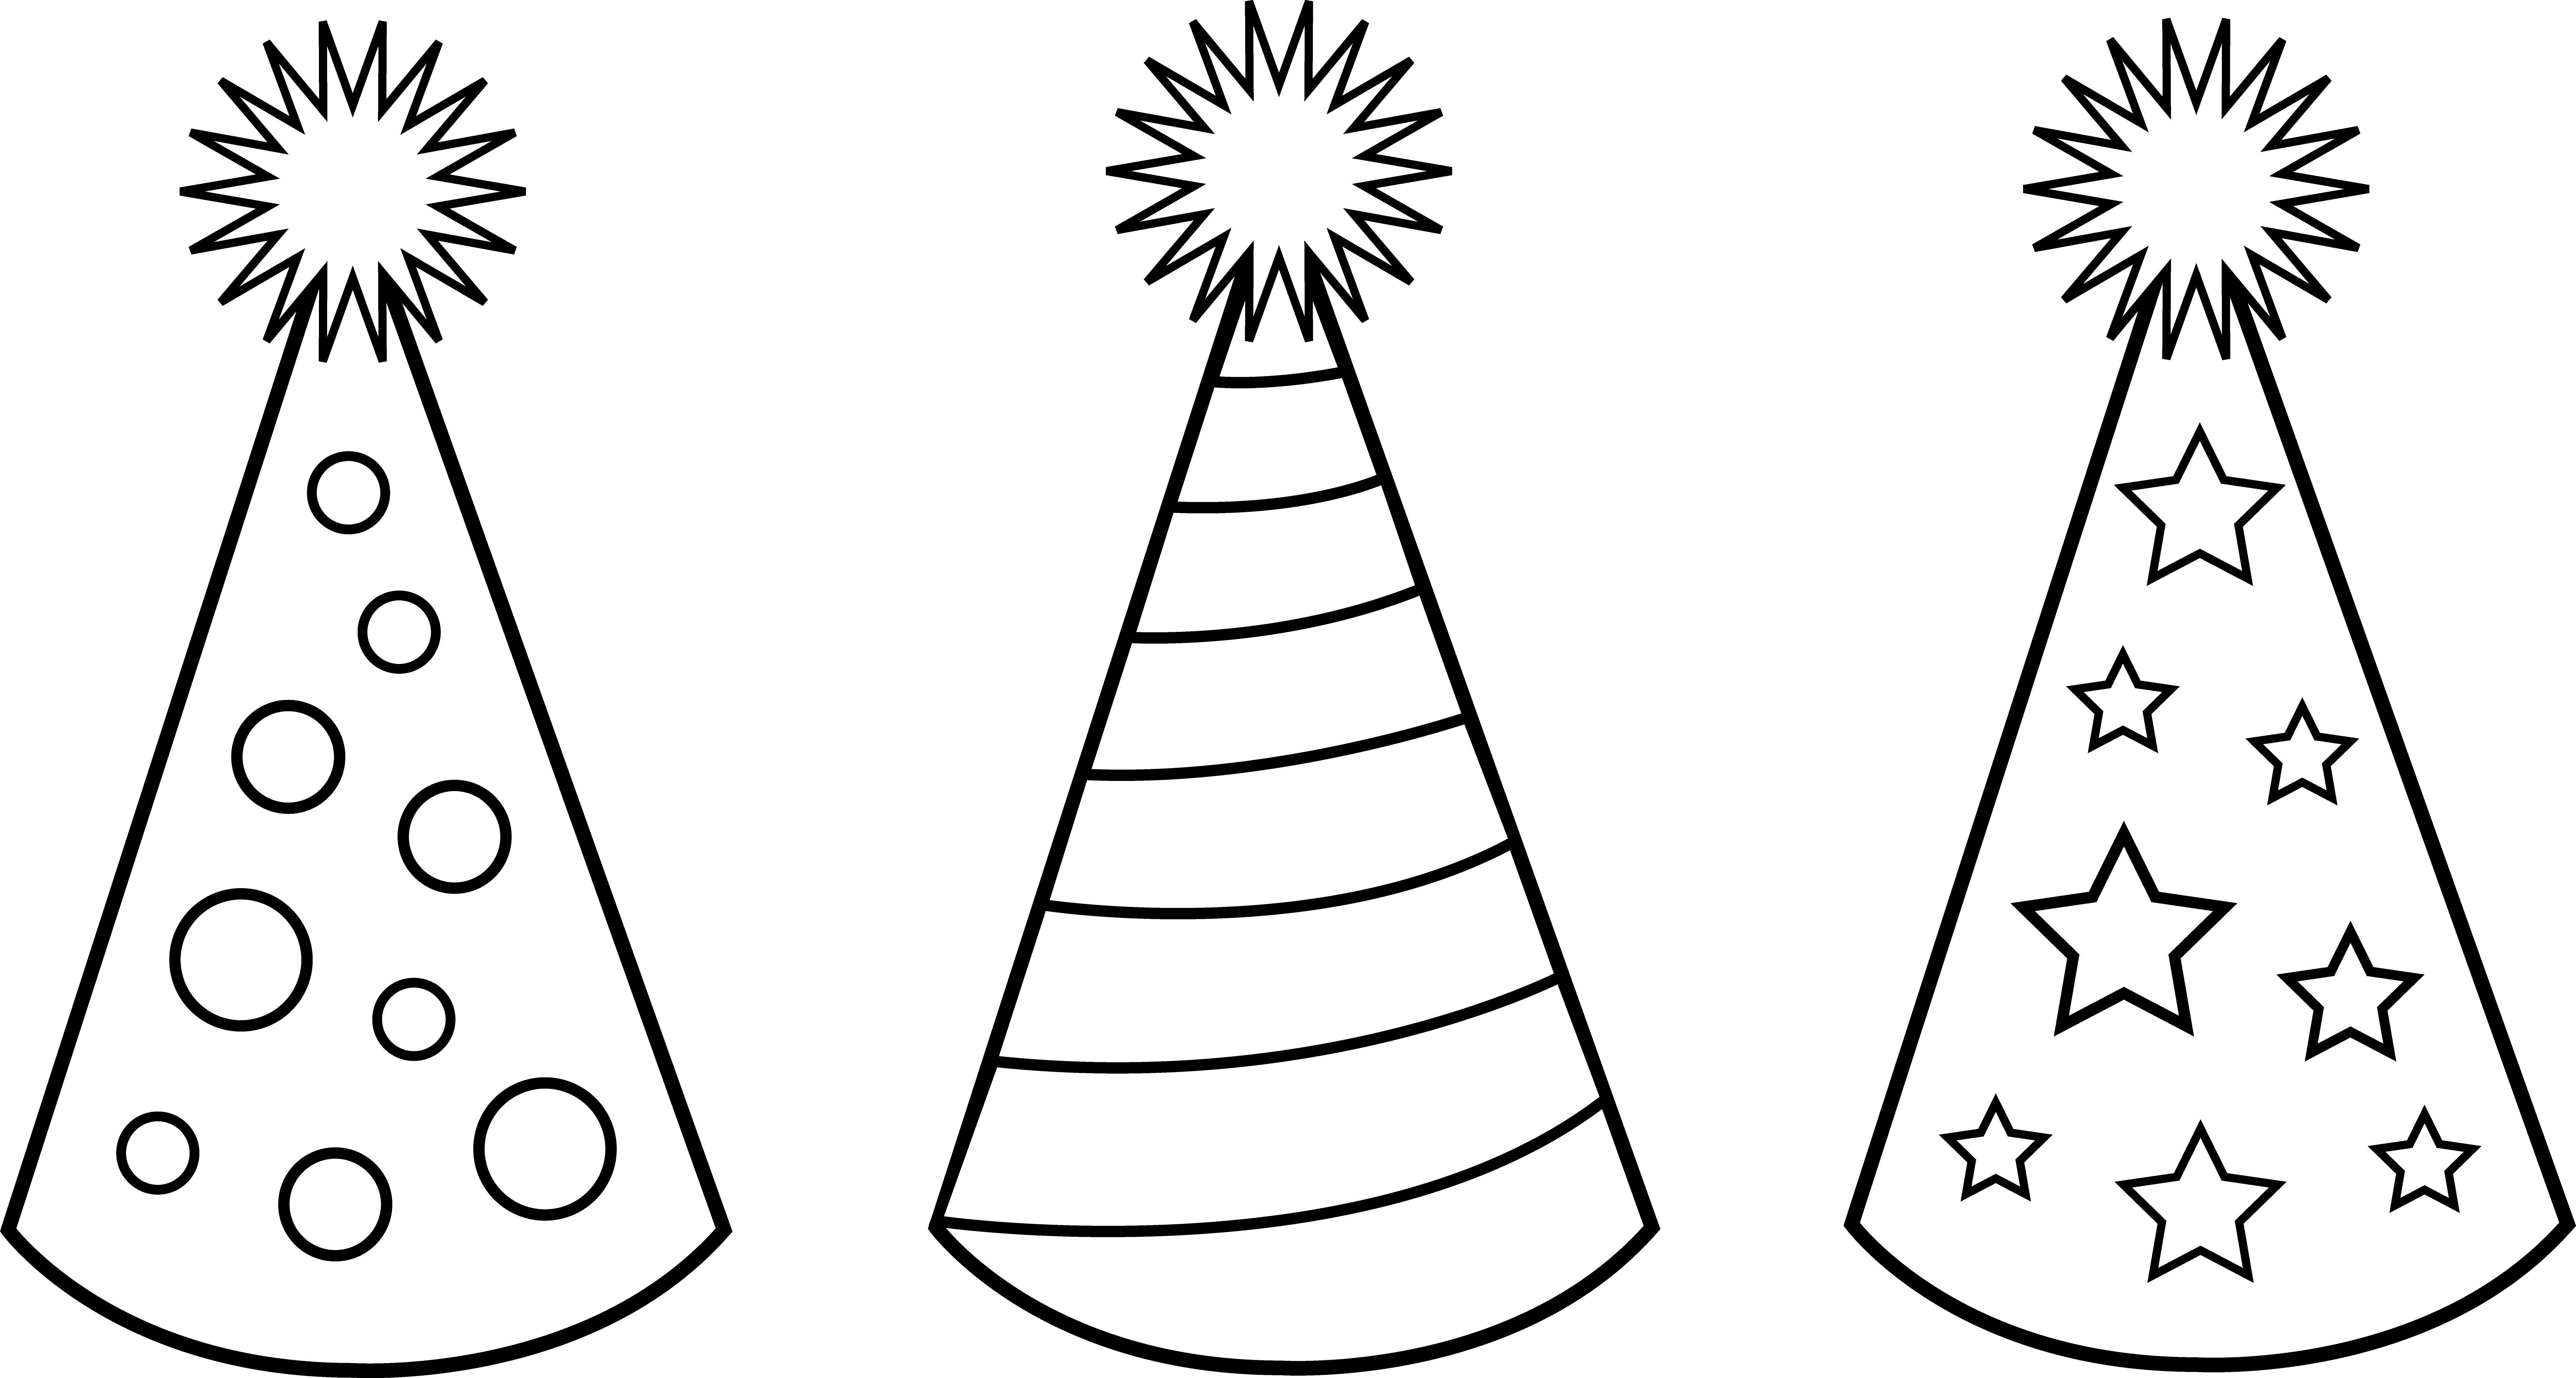 party hat clipart black and white 8 | Clipart Station for Party Hat Clipart Black And White  111ane